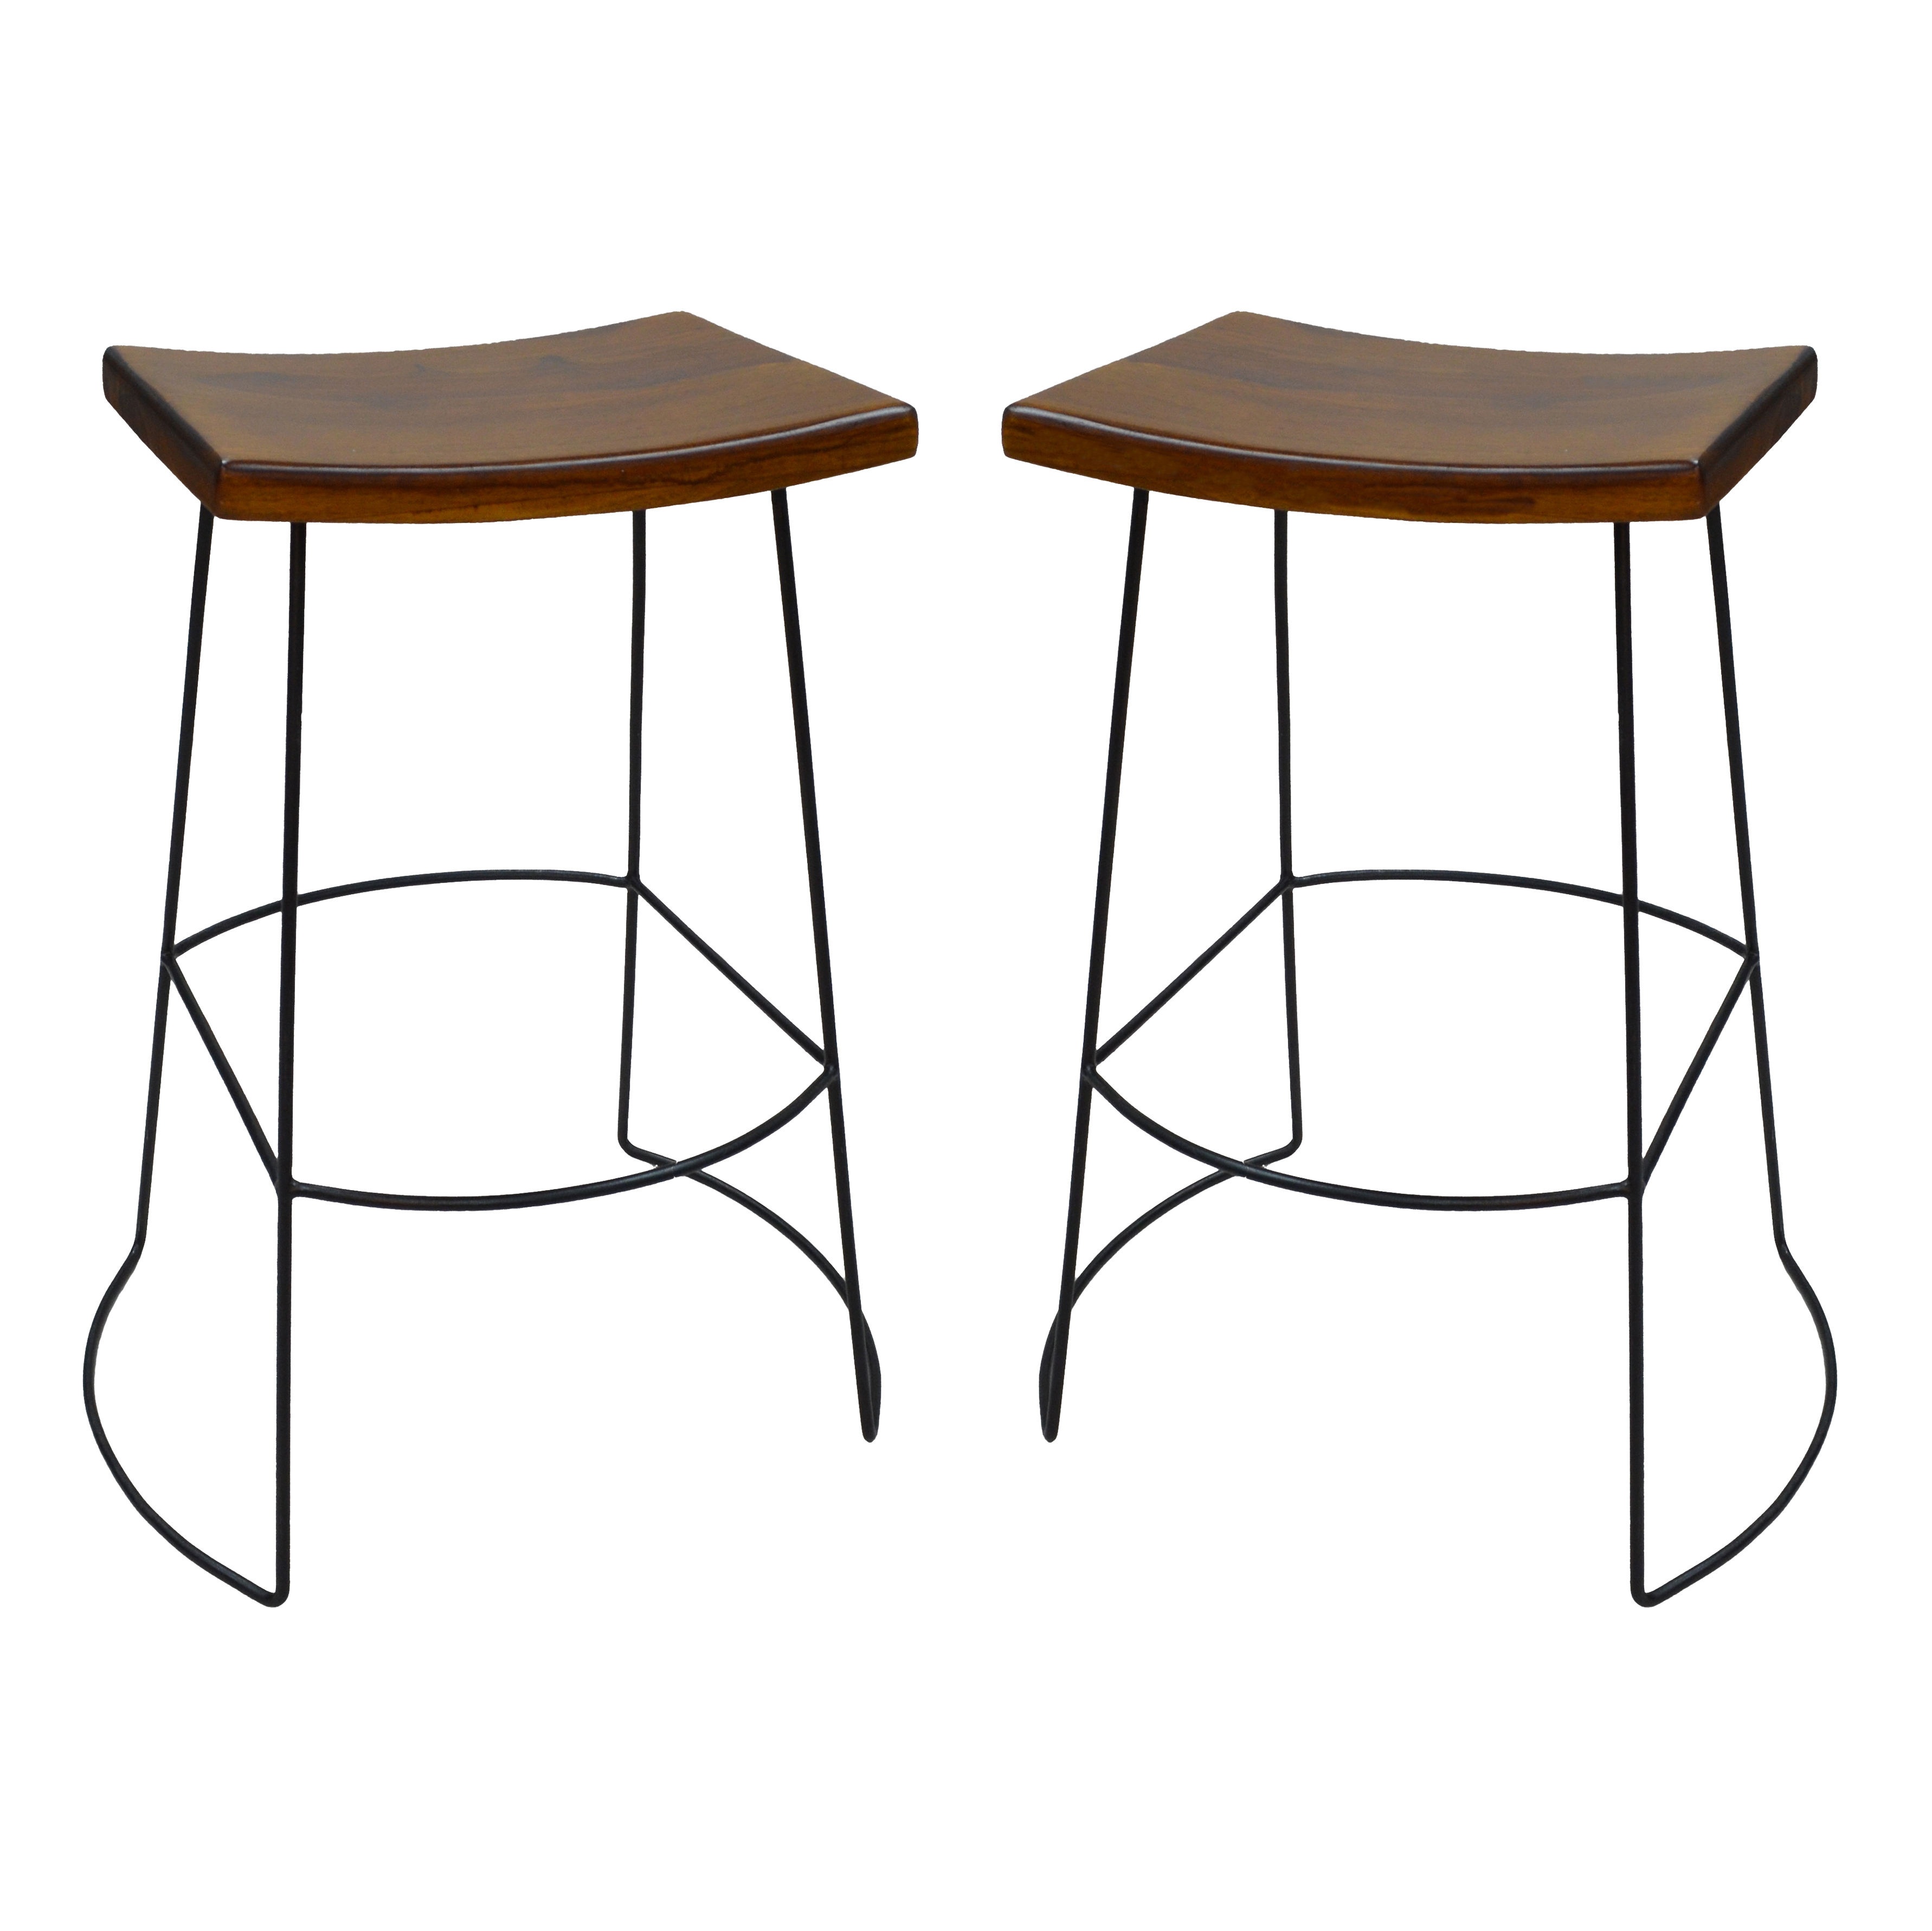 "Reece Saddle Seat 30"" Bar Stool Set of 2, Chestnut/Black"